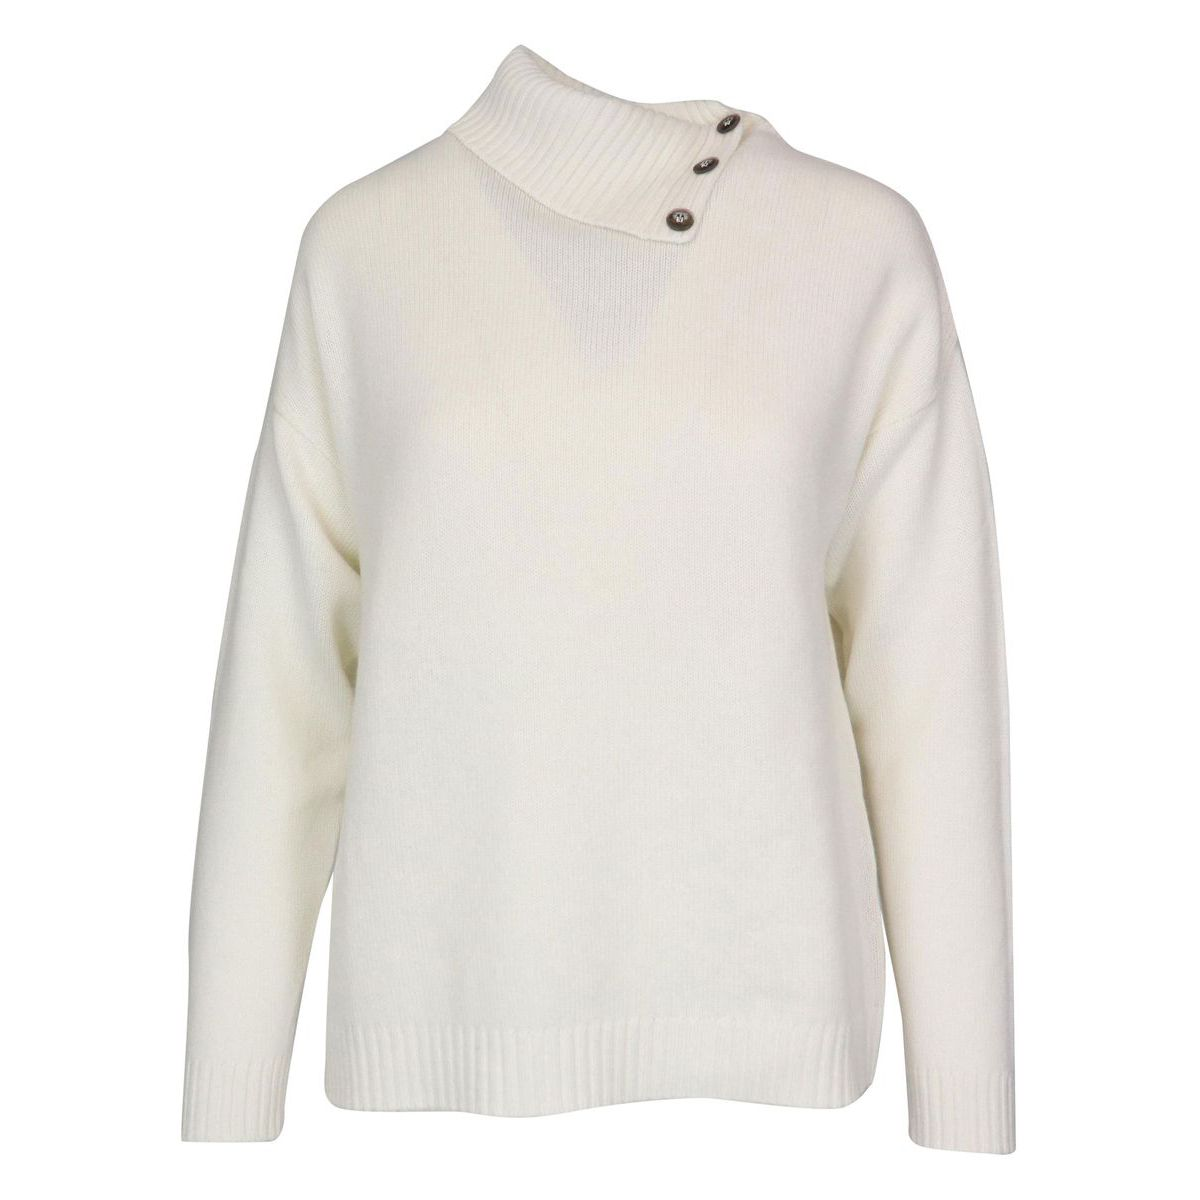 Cashmere sweater with high neck with buttons Cream Gran Sasso